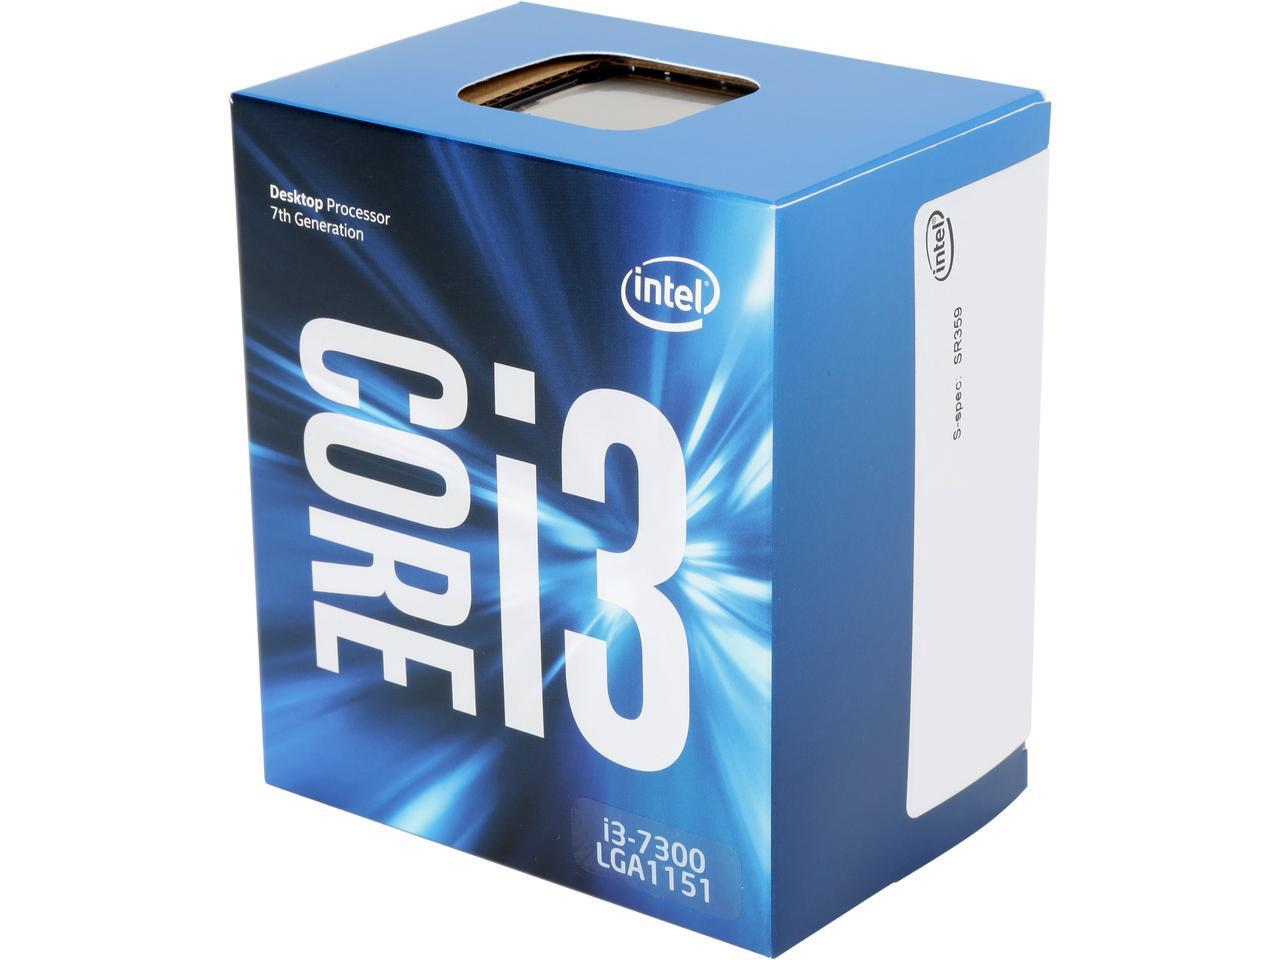 Процесор Intel Kaby lake Core i3-7300 4.0GHz, 4MB, 51W LGA1151, BOX